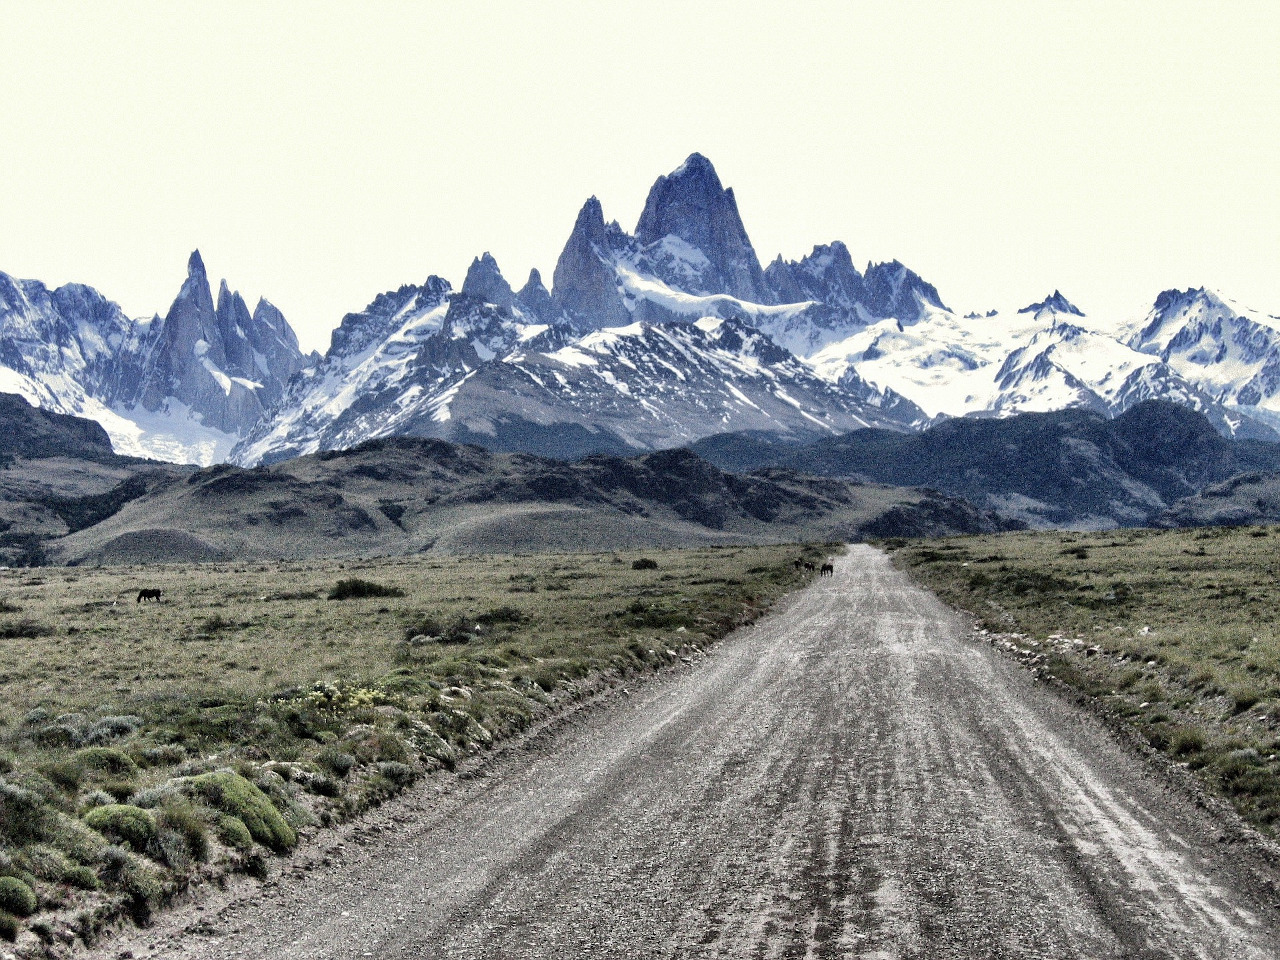 Fitz Roy, El Chalten, Patagonia. The best places to visit in Patagonia, Argentina